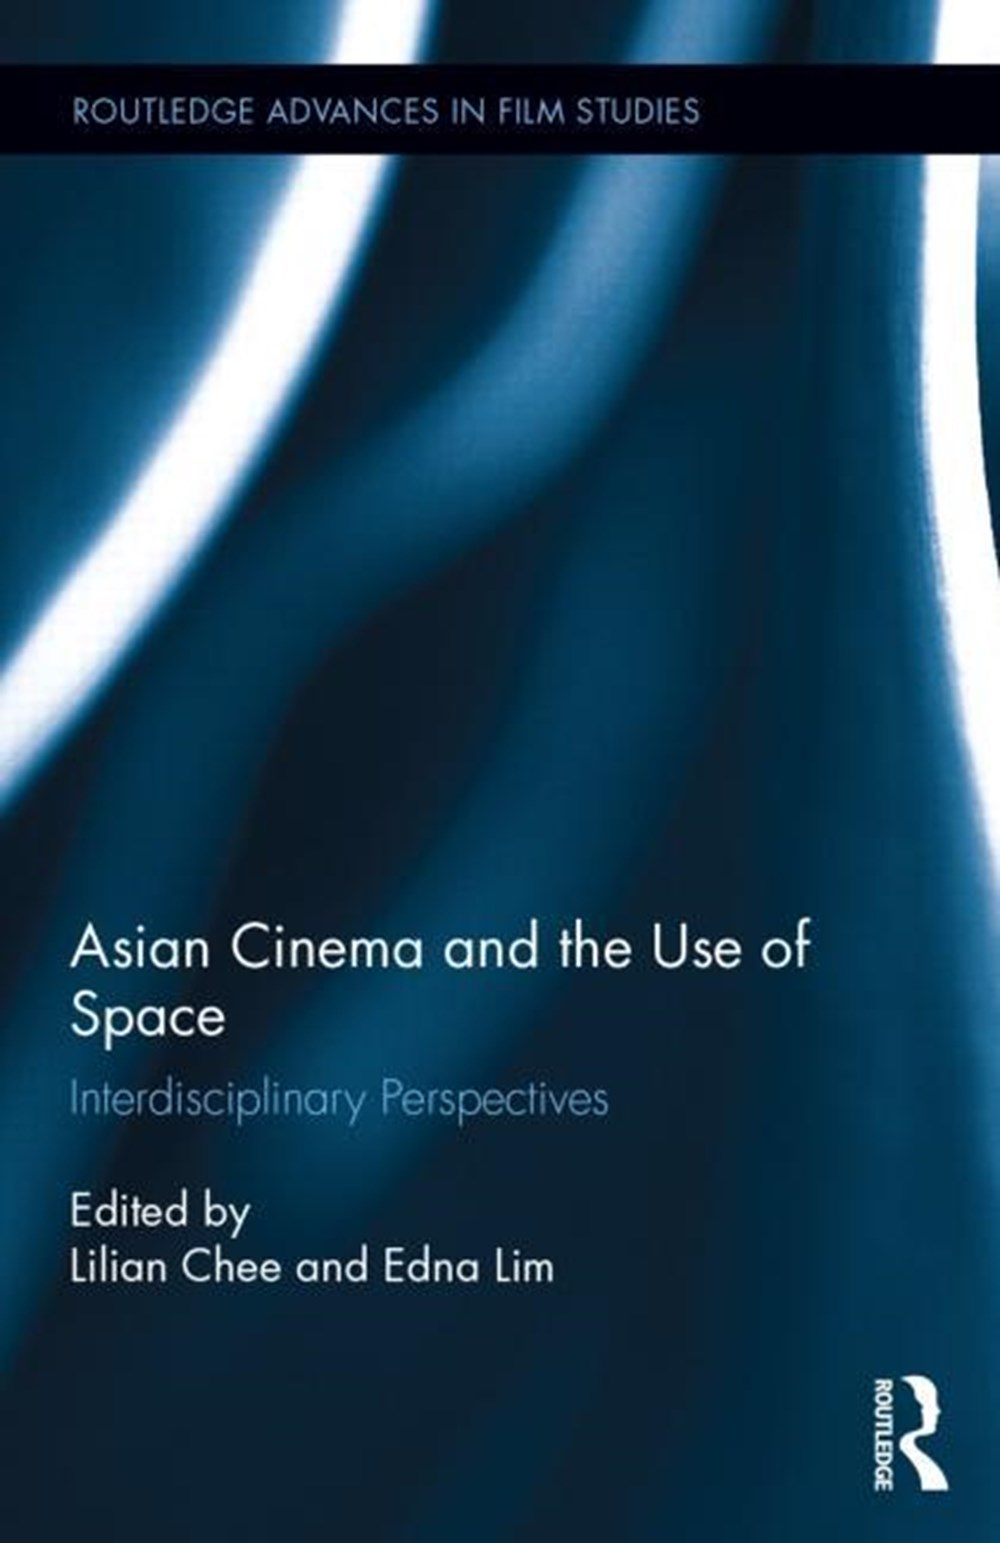 Asian Cinema and the Use of Space Interdisciplinary Perspectives